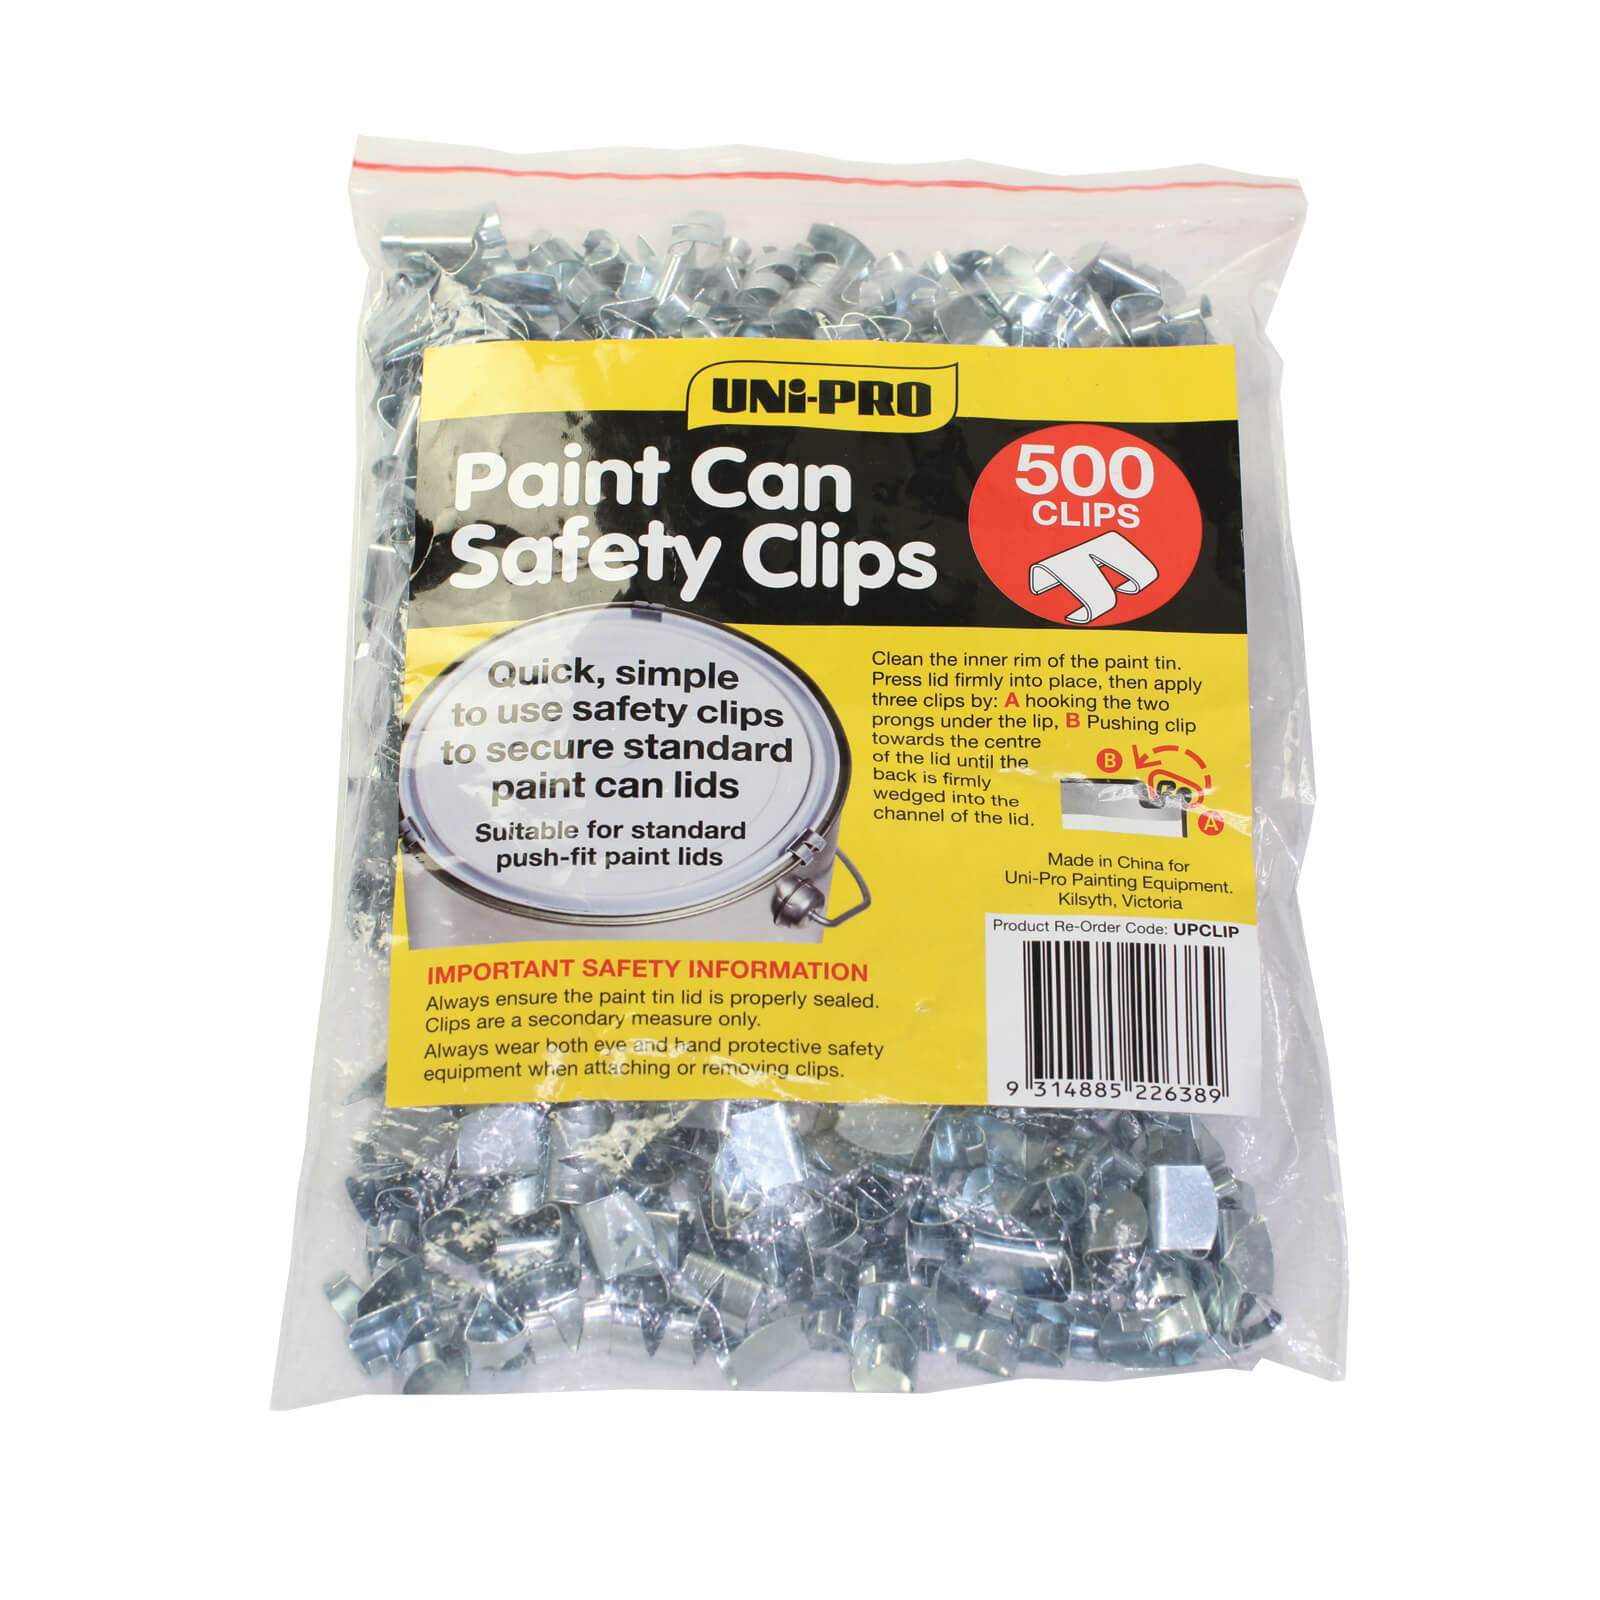 UNi-PRO Paint Can Safety Clips